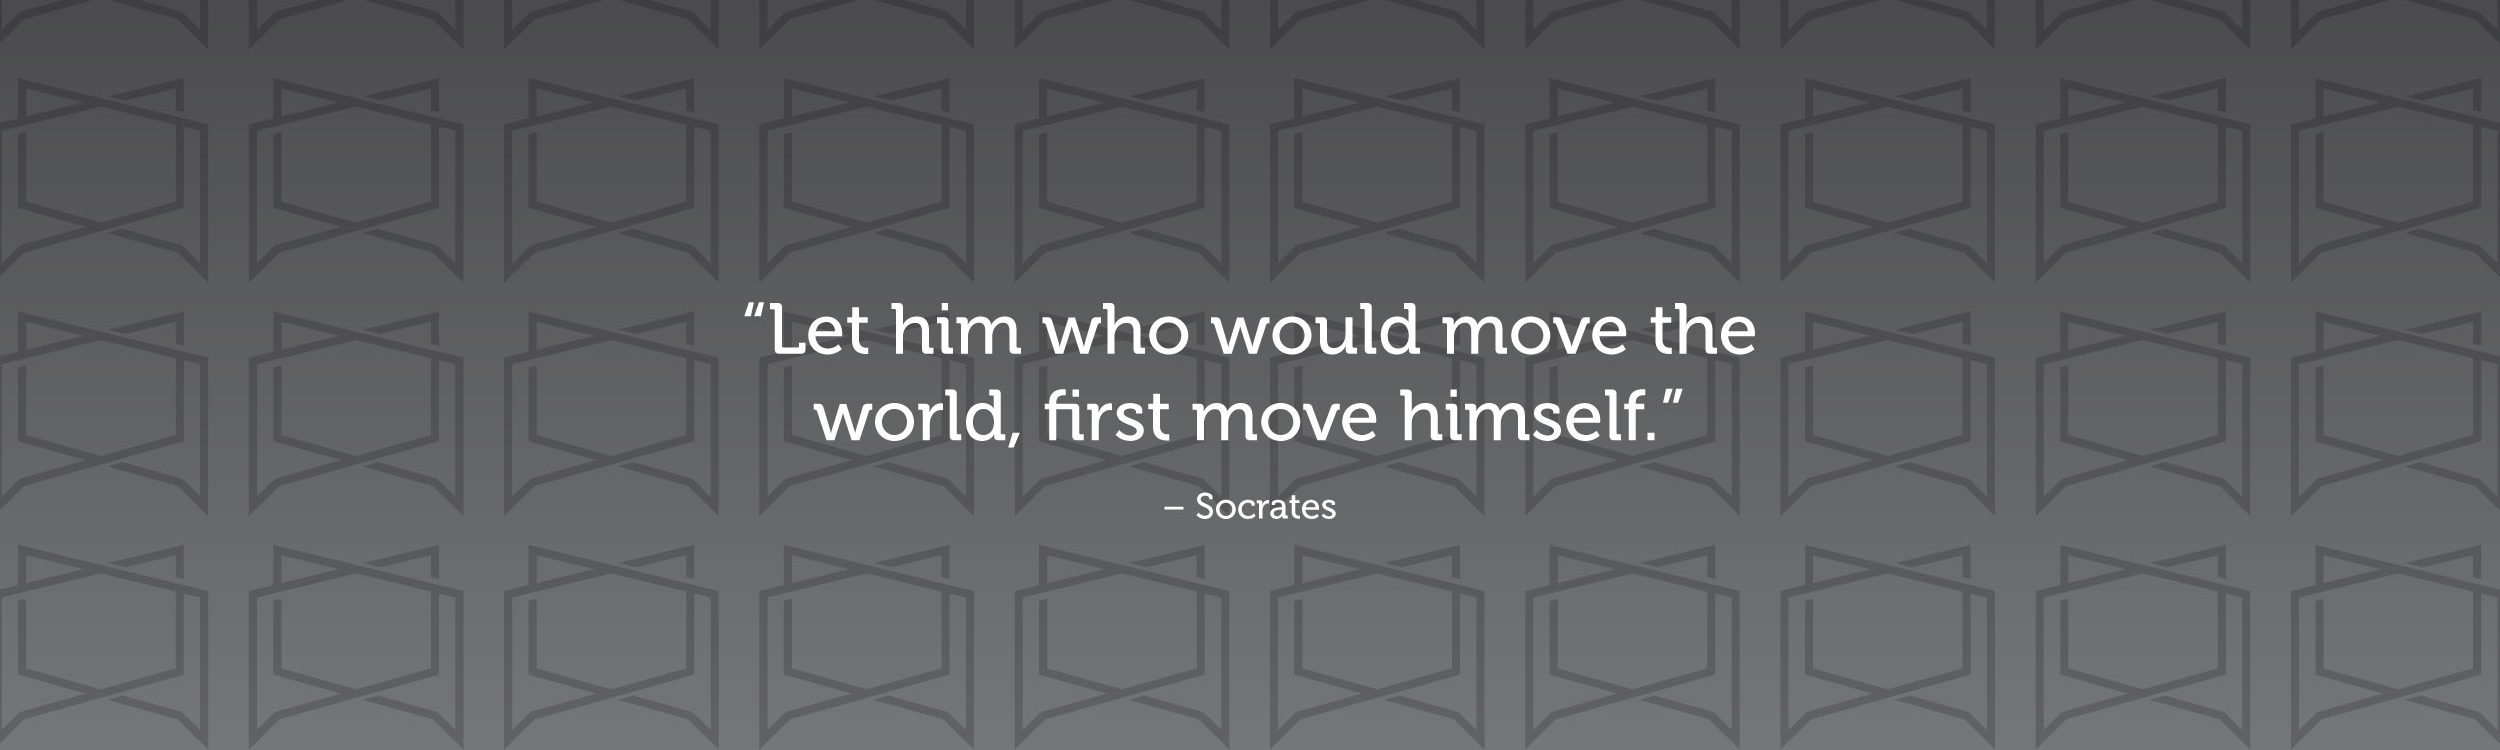 """Let him who would move the world, first move himself."" —Socrates"